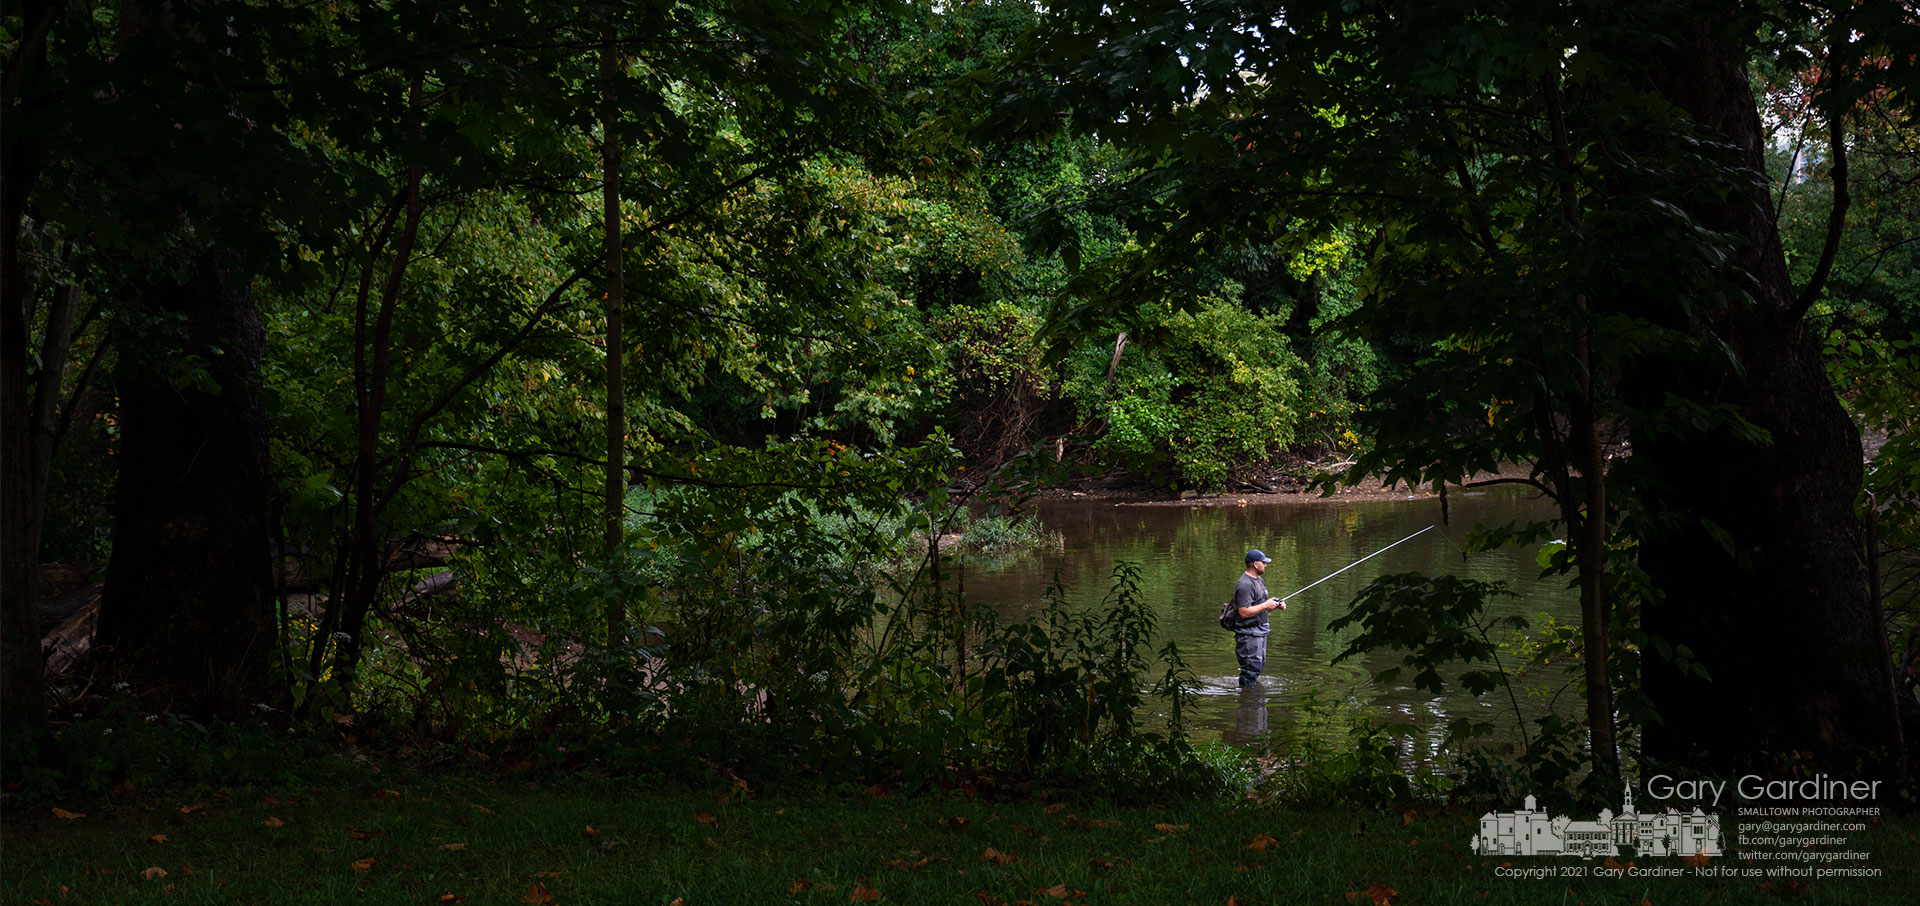 A fisherman tries his luck below the spillway for the Westerville Alum Creek dam during rain showers Tuesday afternoon. My Final Photo for Sept. 15, 2021.